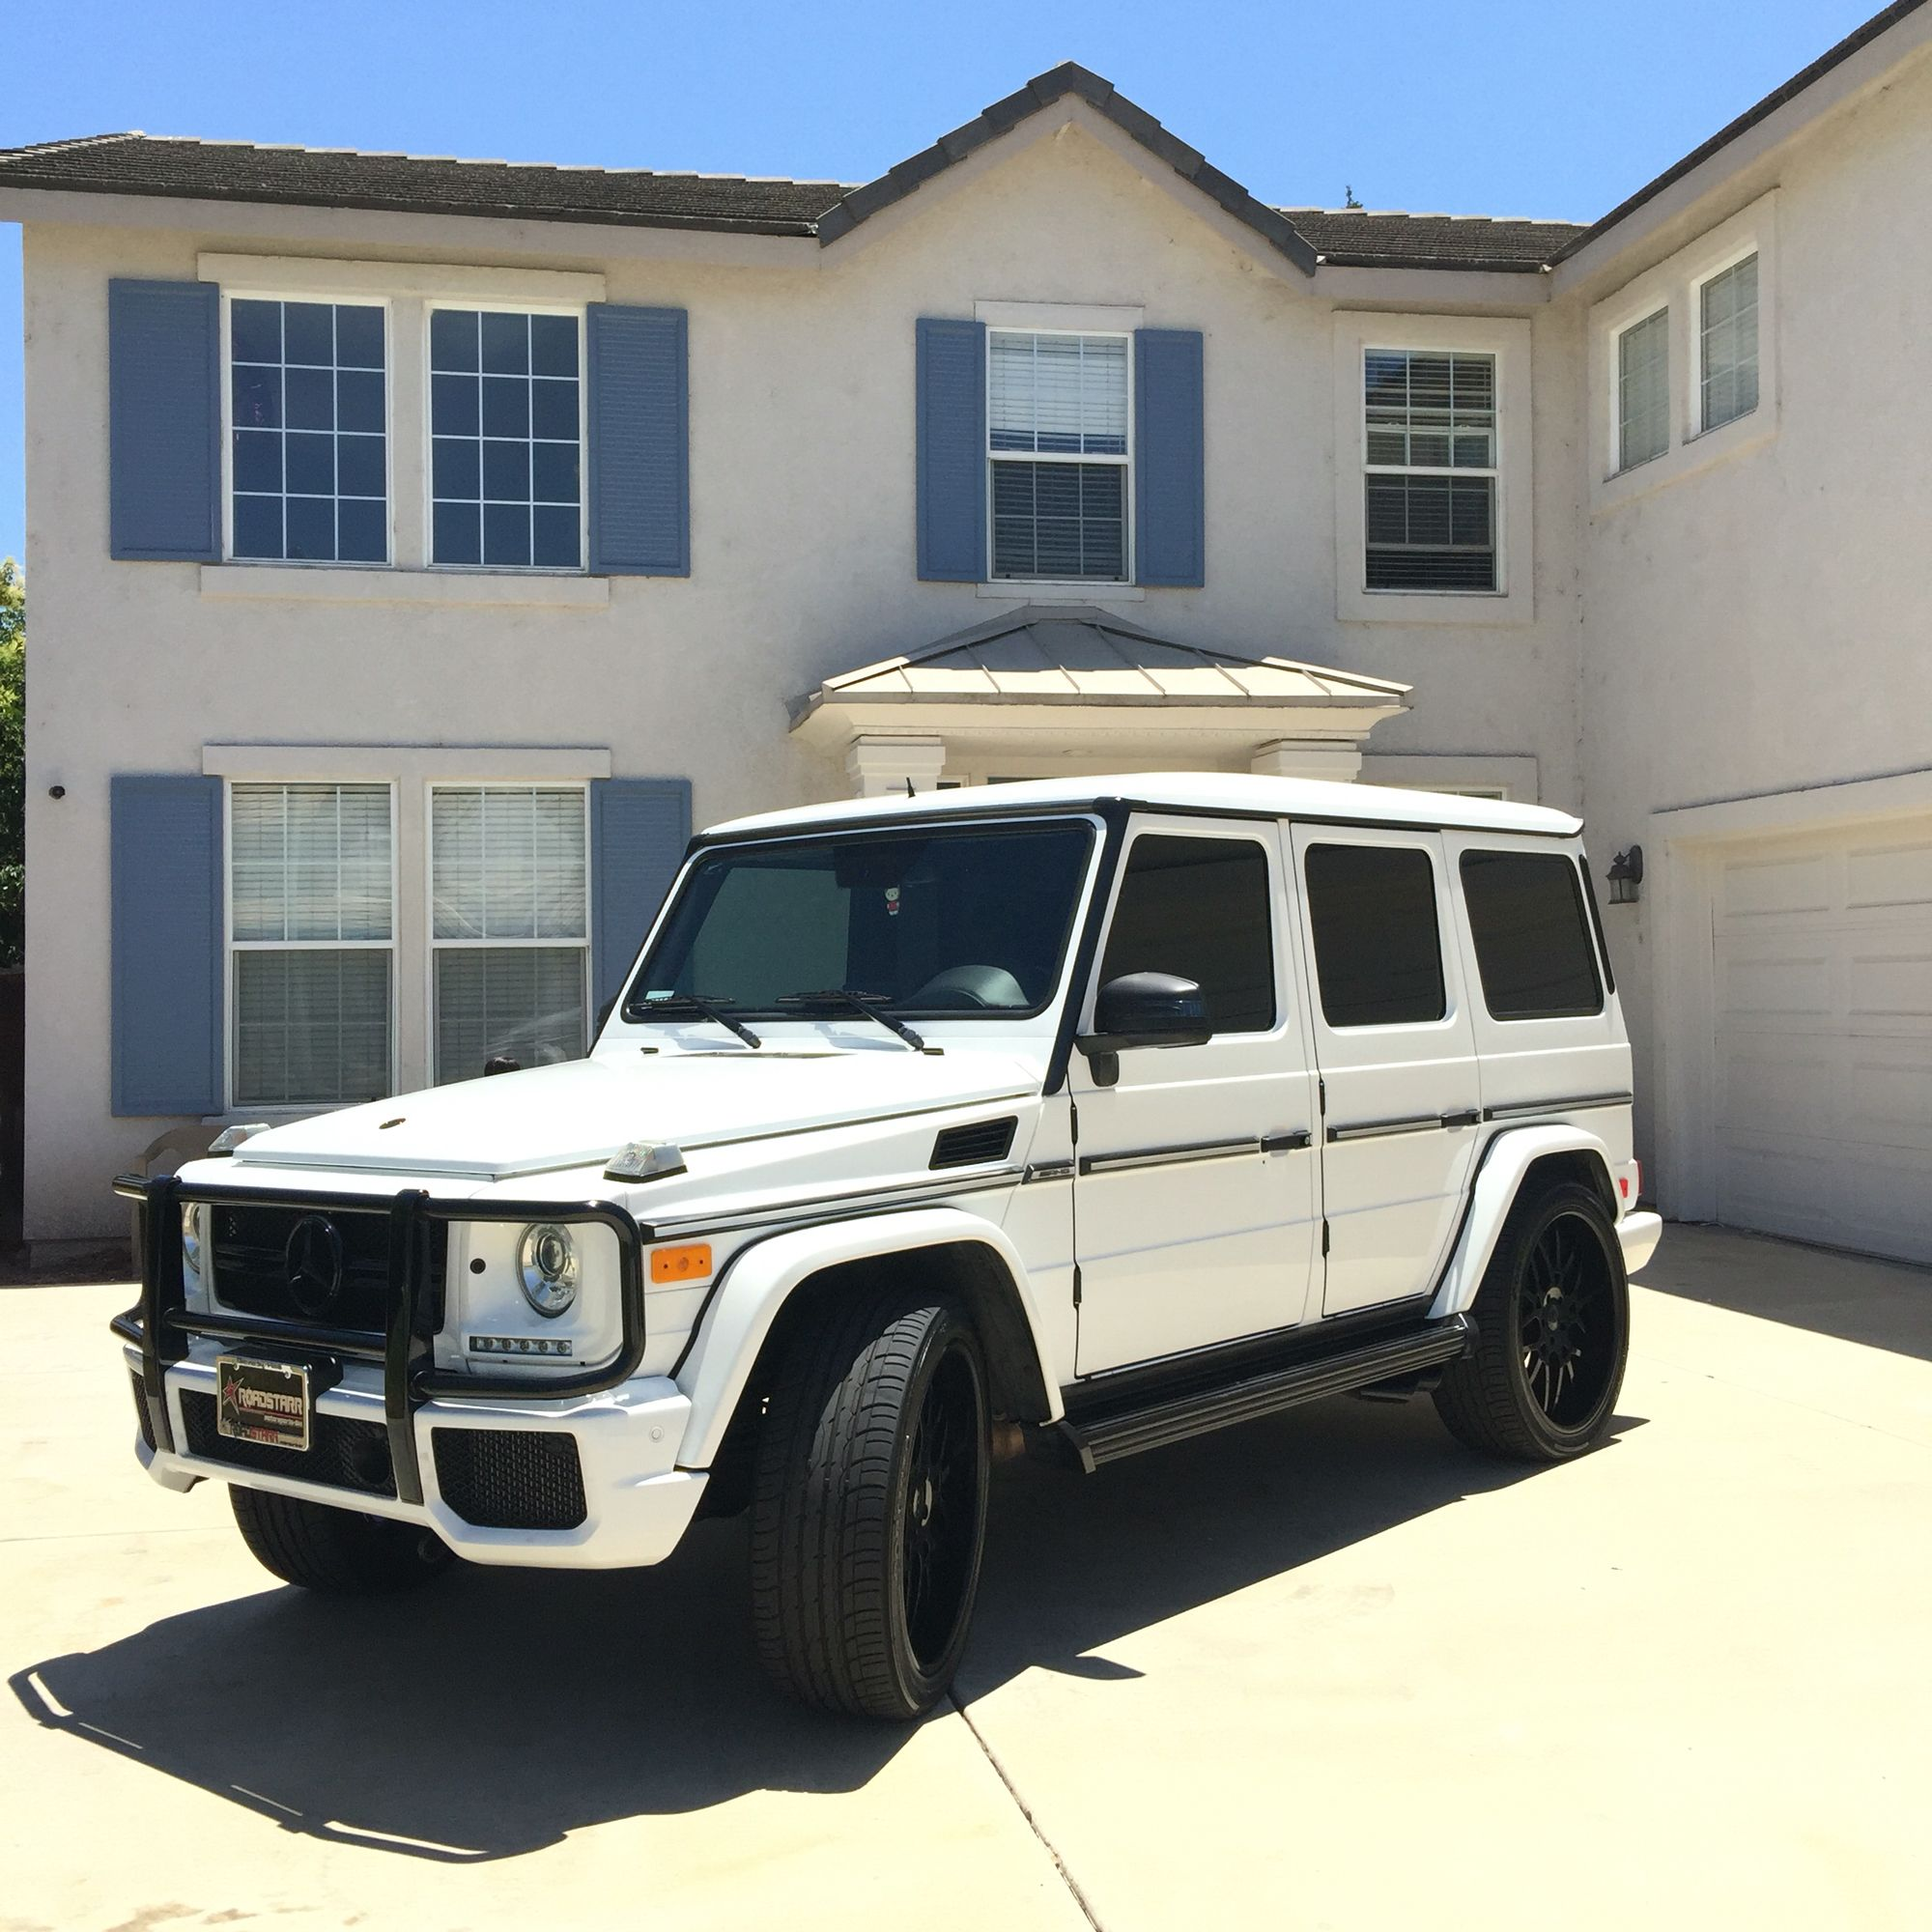 Update of my car It s back to white Mercedes G63 AMG G wagon